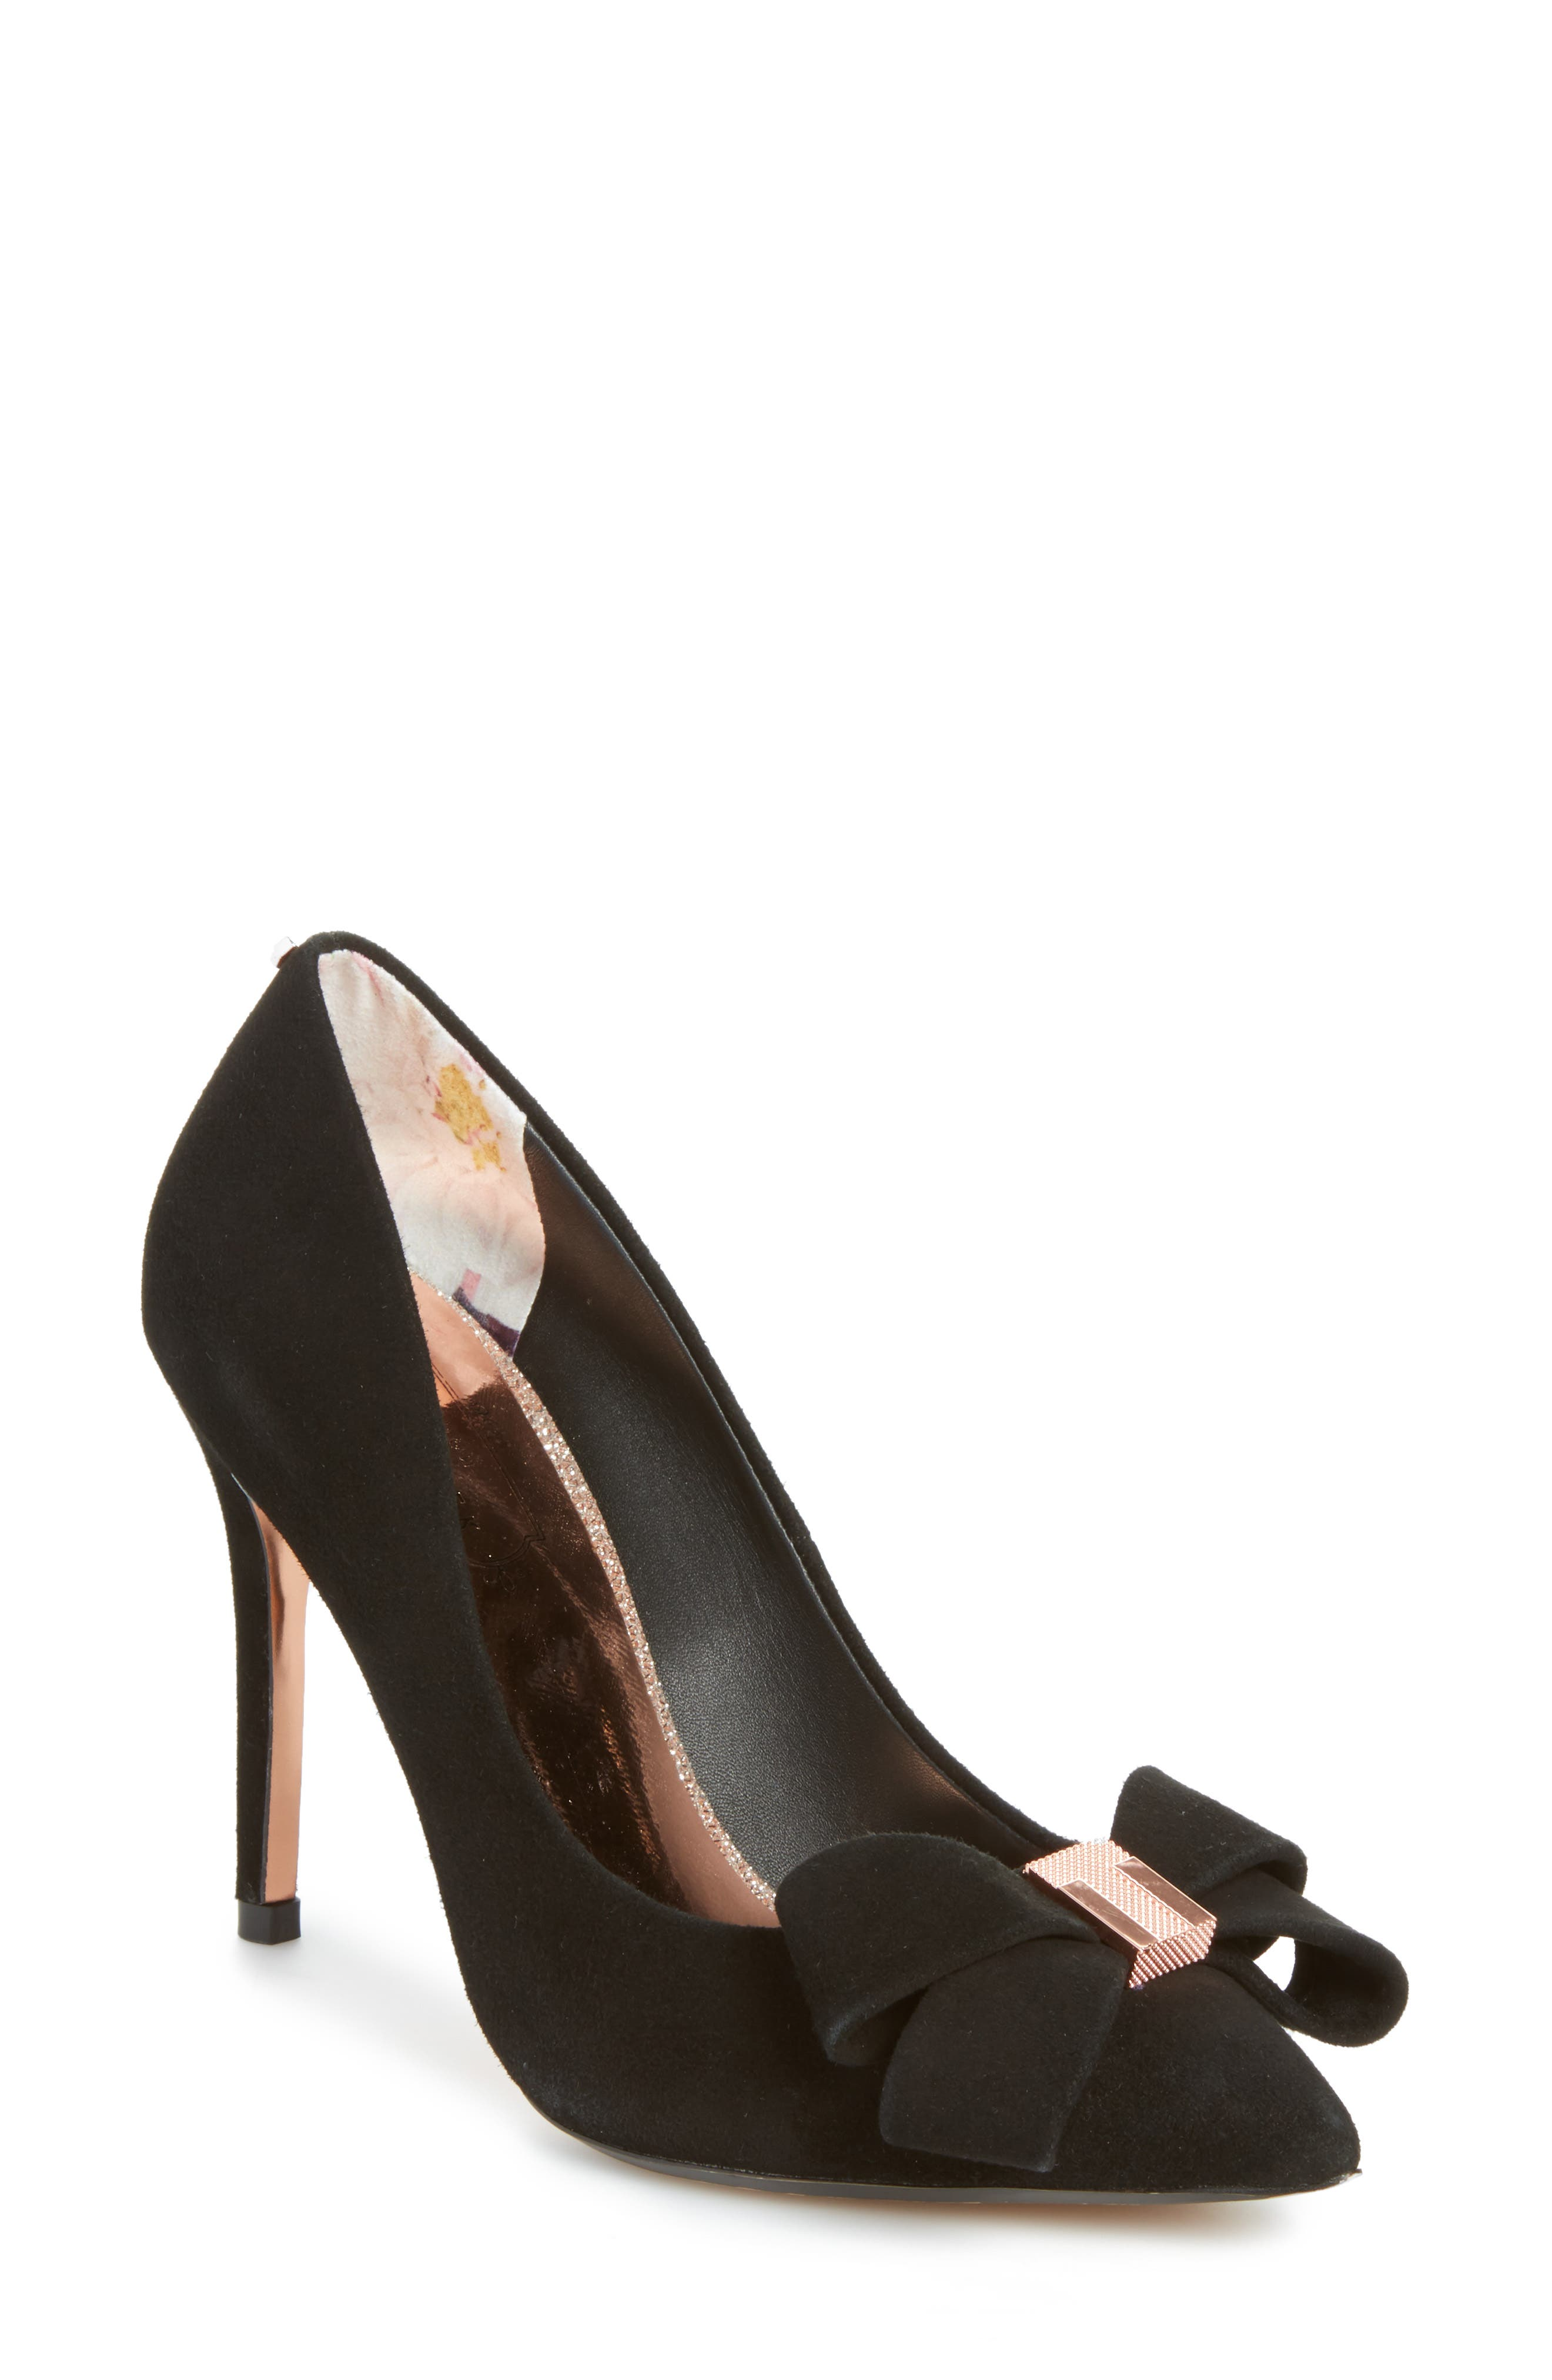 Skalett Pump,                             Main thumbnail 1, color,                             Black Suede